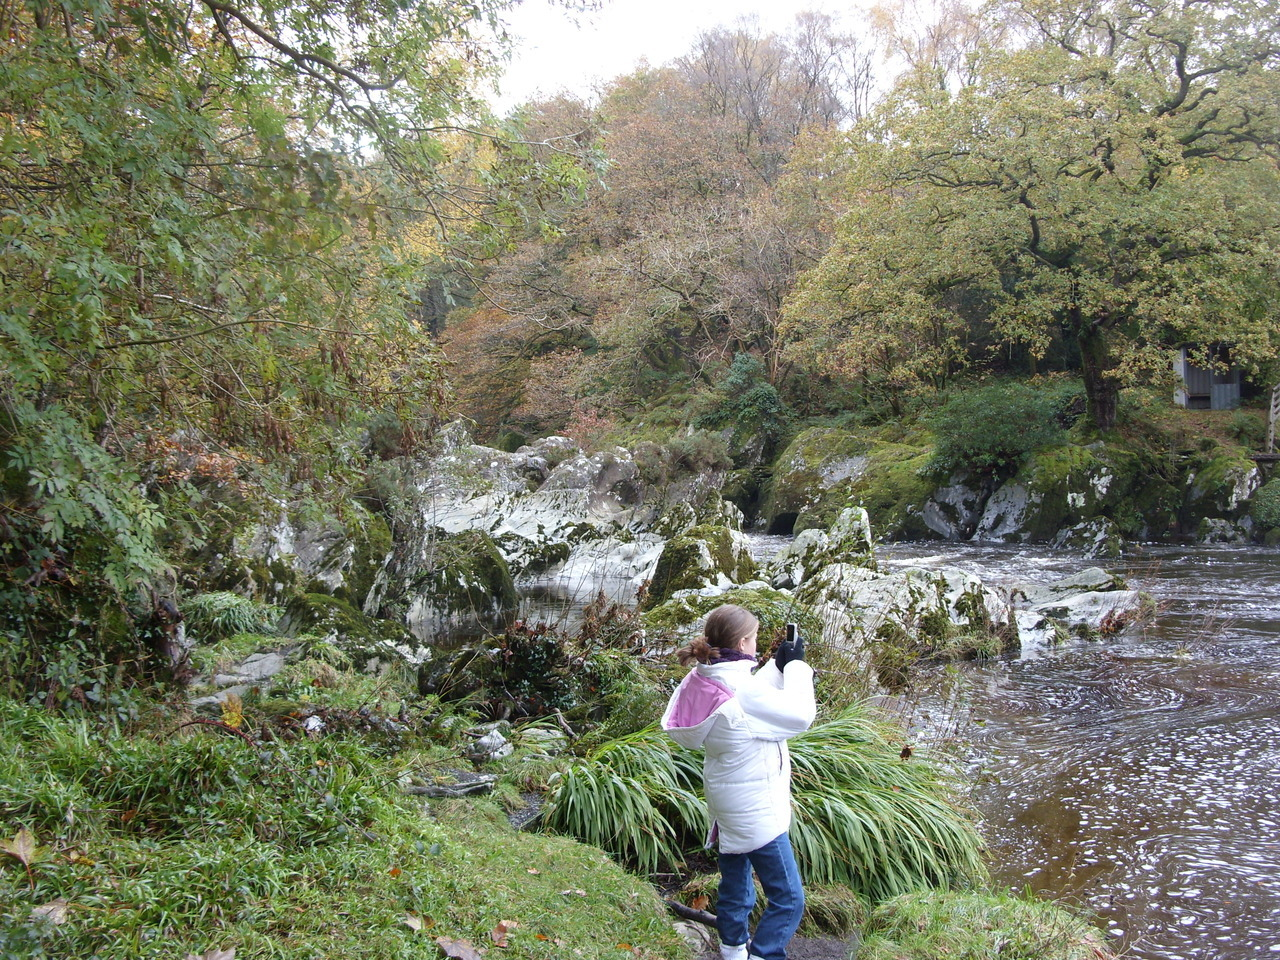 When I was in Wales about 5 years ago…its a beautiful setting♥